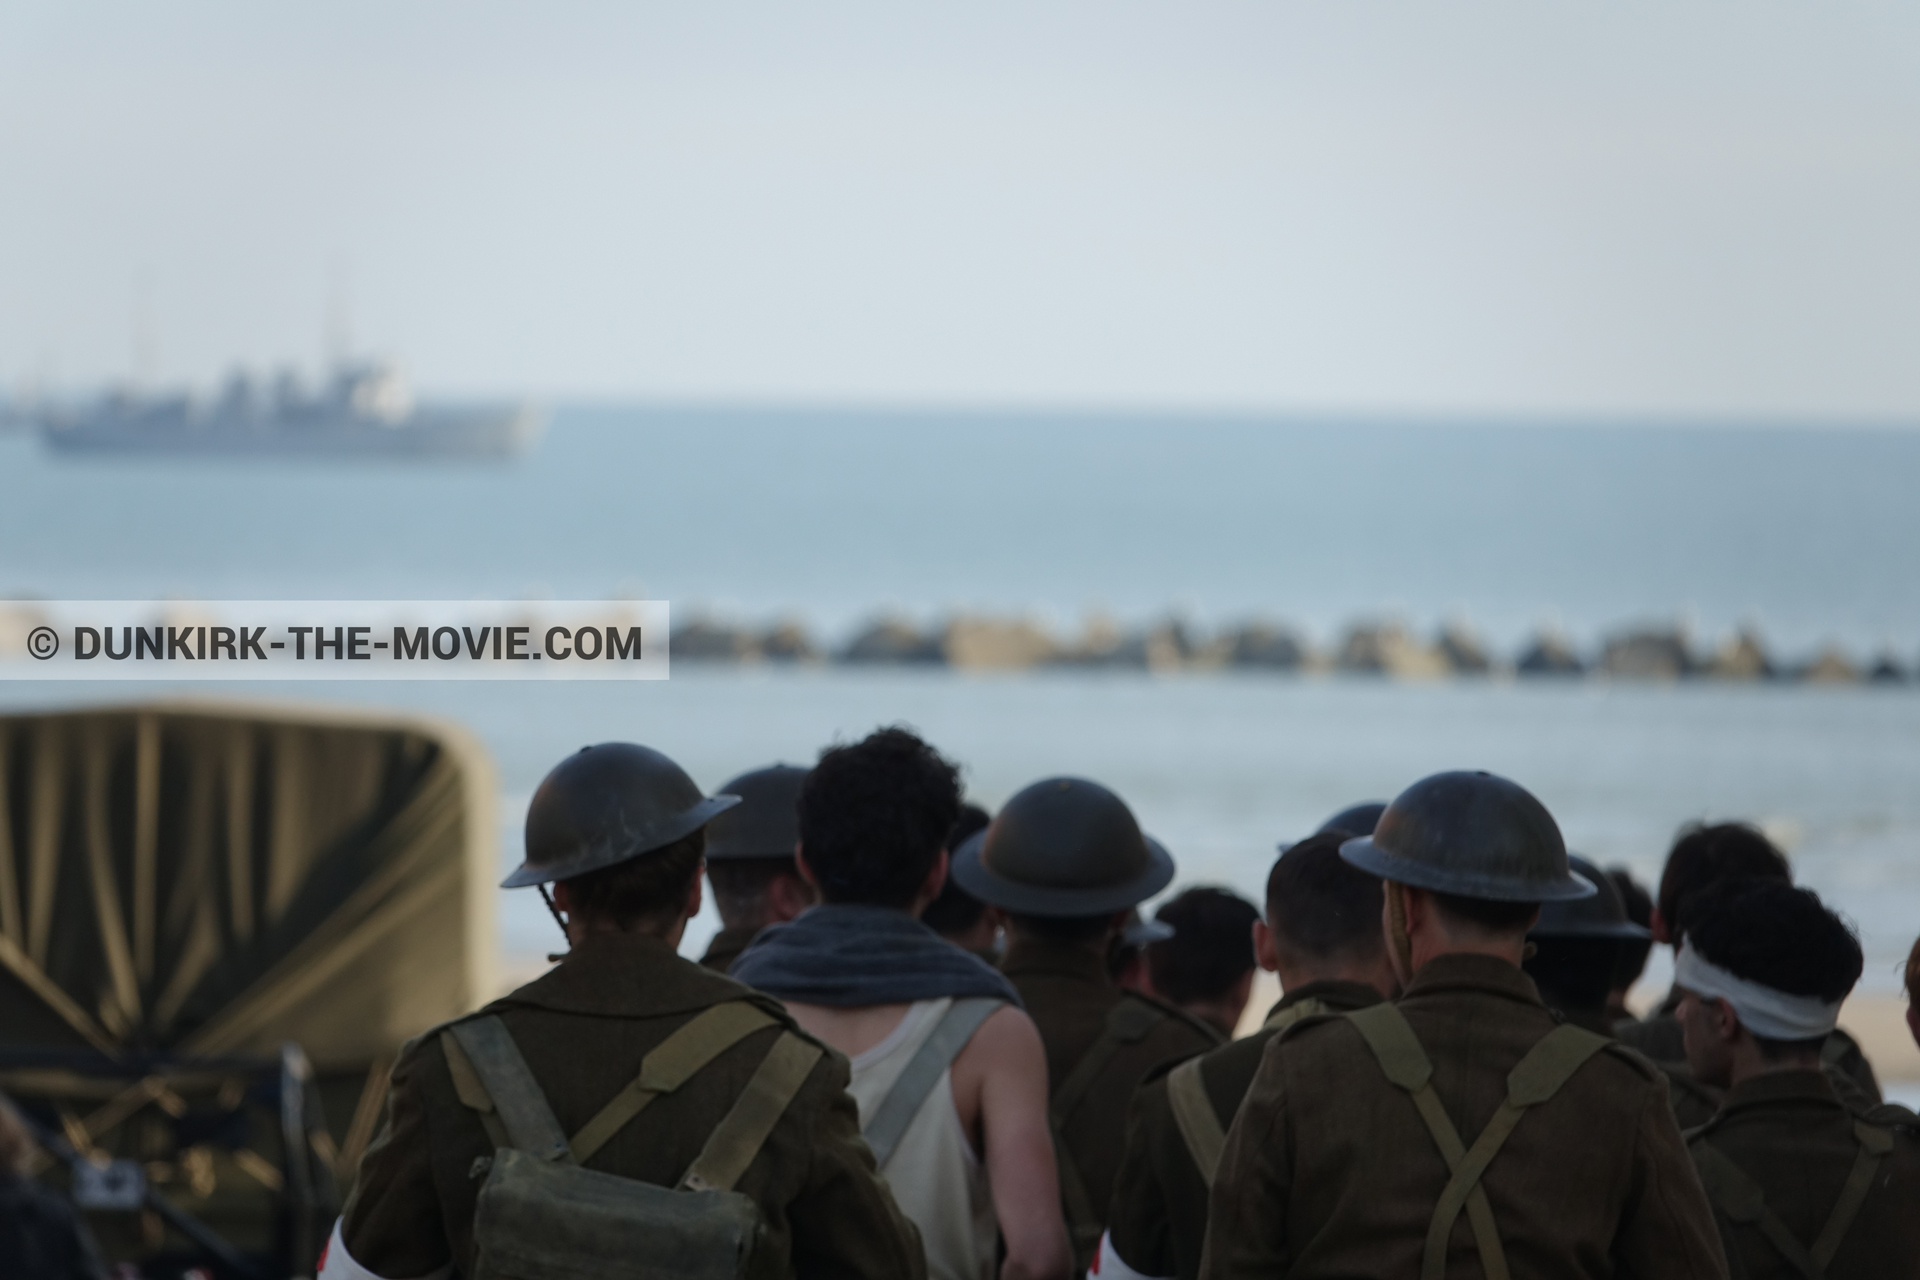 Picture with boat, truck, supernumeraries,  from behind the scene of the Dunkirk movie by Nolan